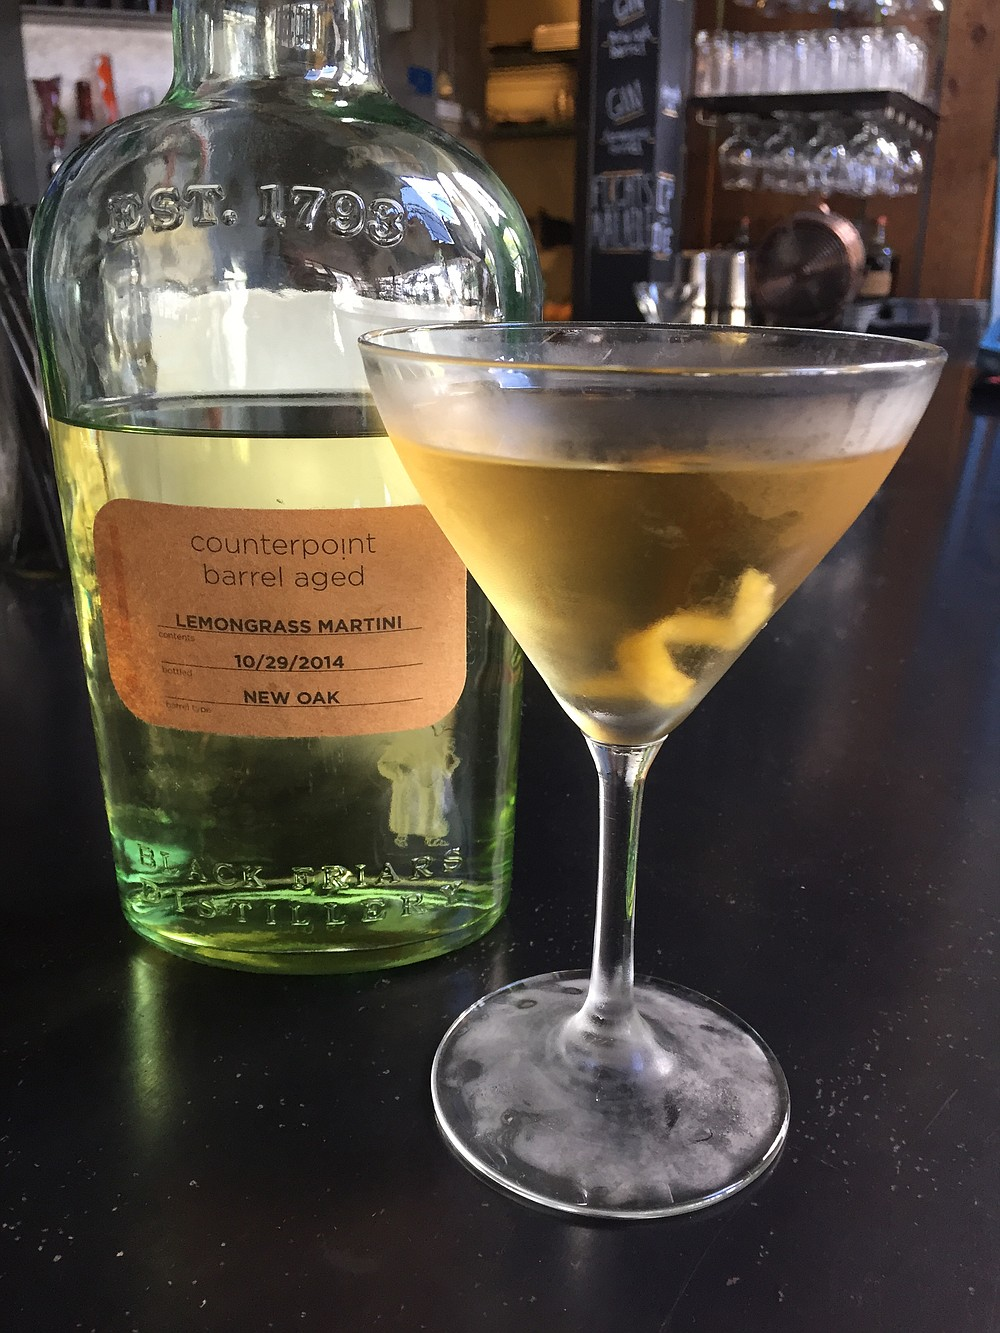 Barrel-aged lemongrass martini at Counterpoint